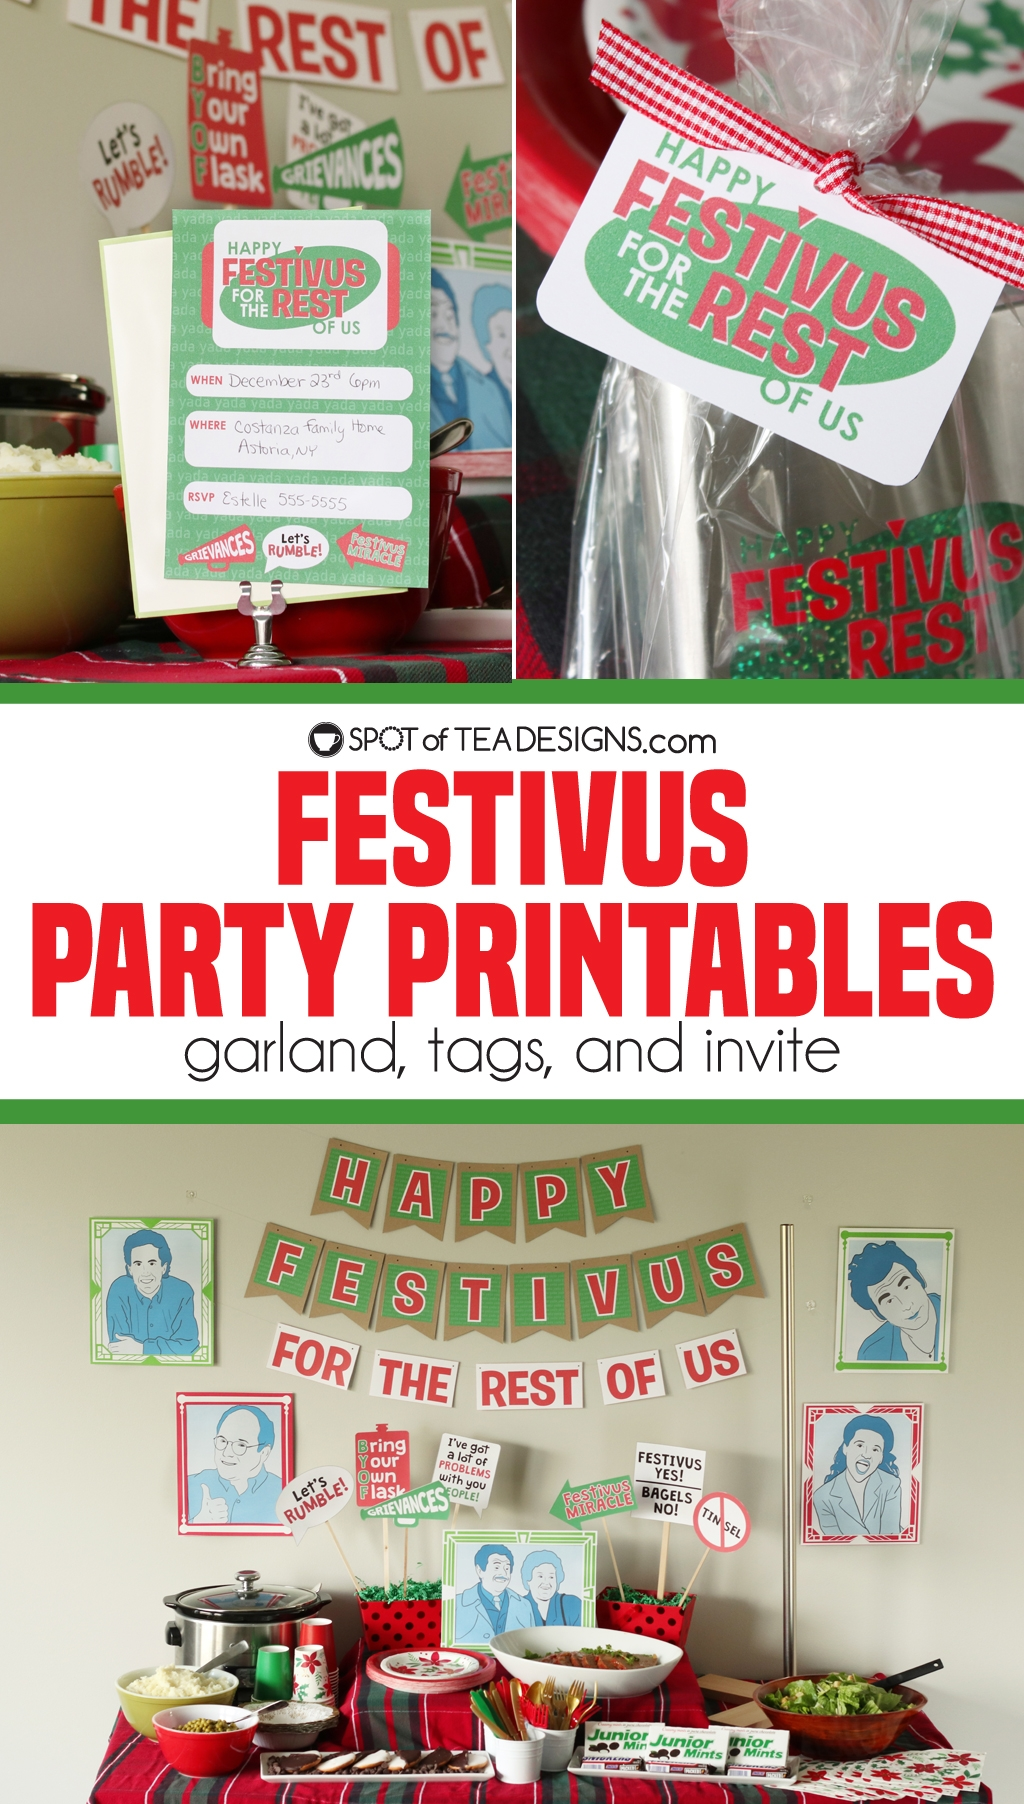 Festivus party printables - use the garland, invite and favor tags for your December 23rd party inspired by the famous Seinfeld episode | spotofteadesigns.com